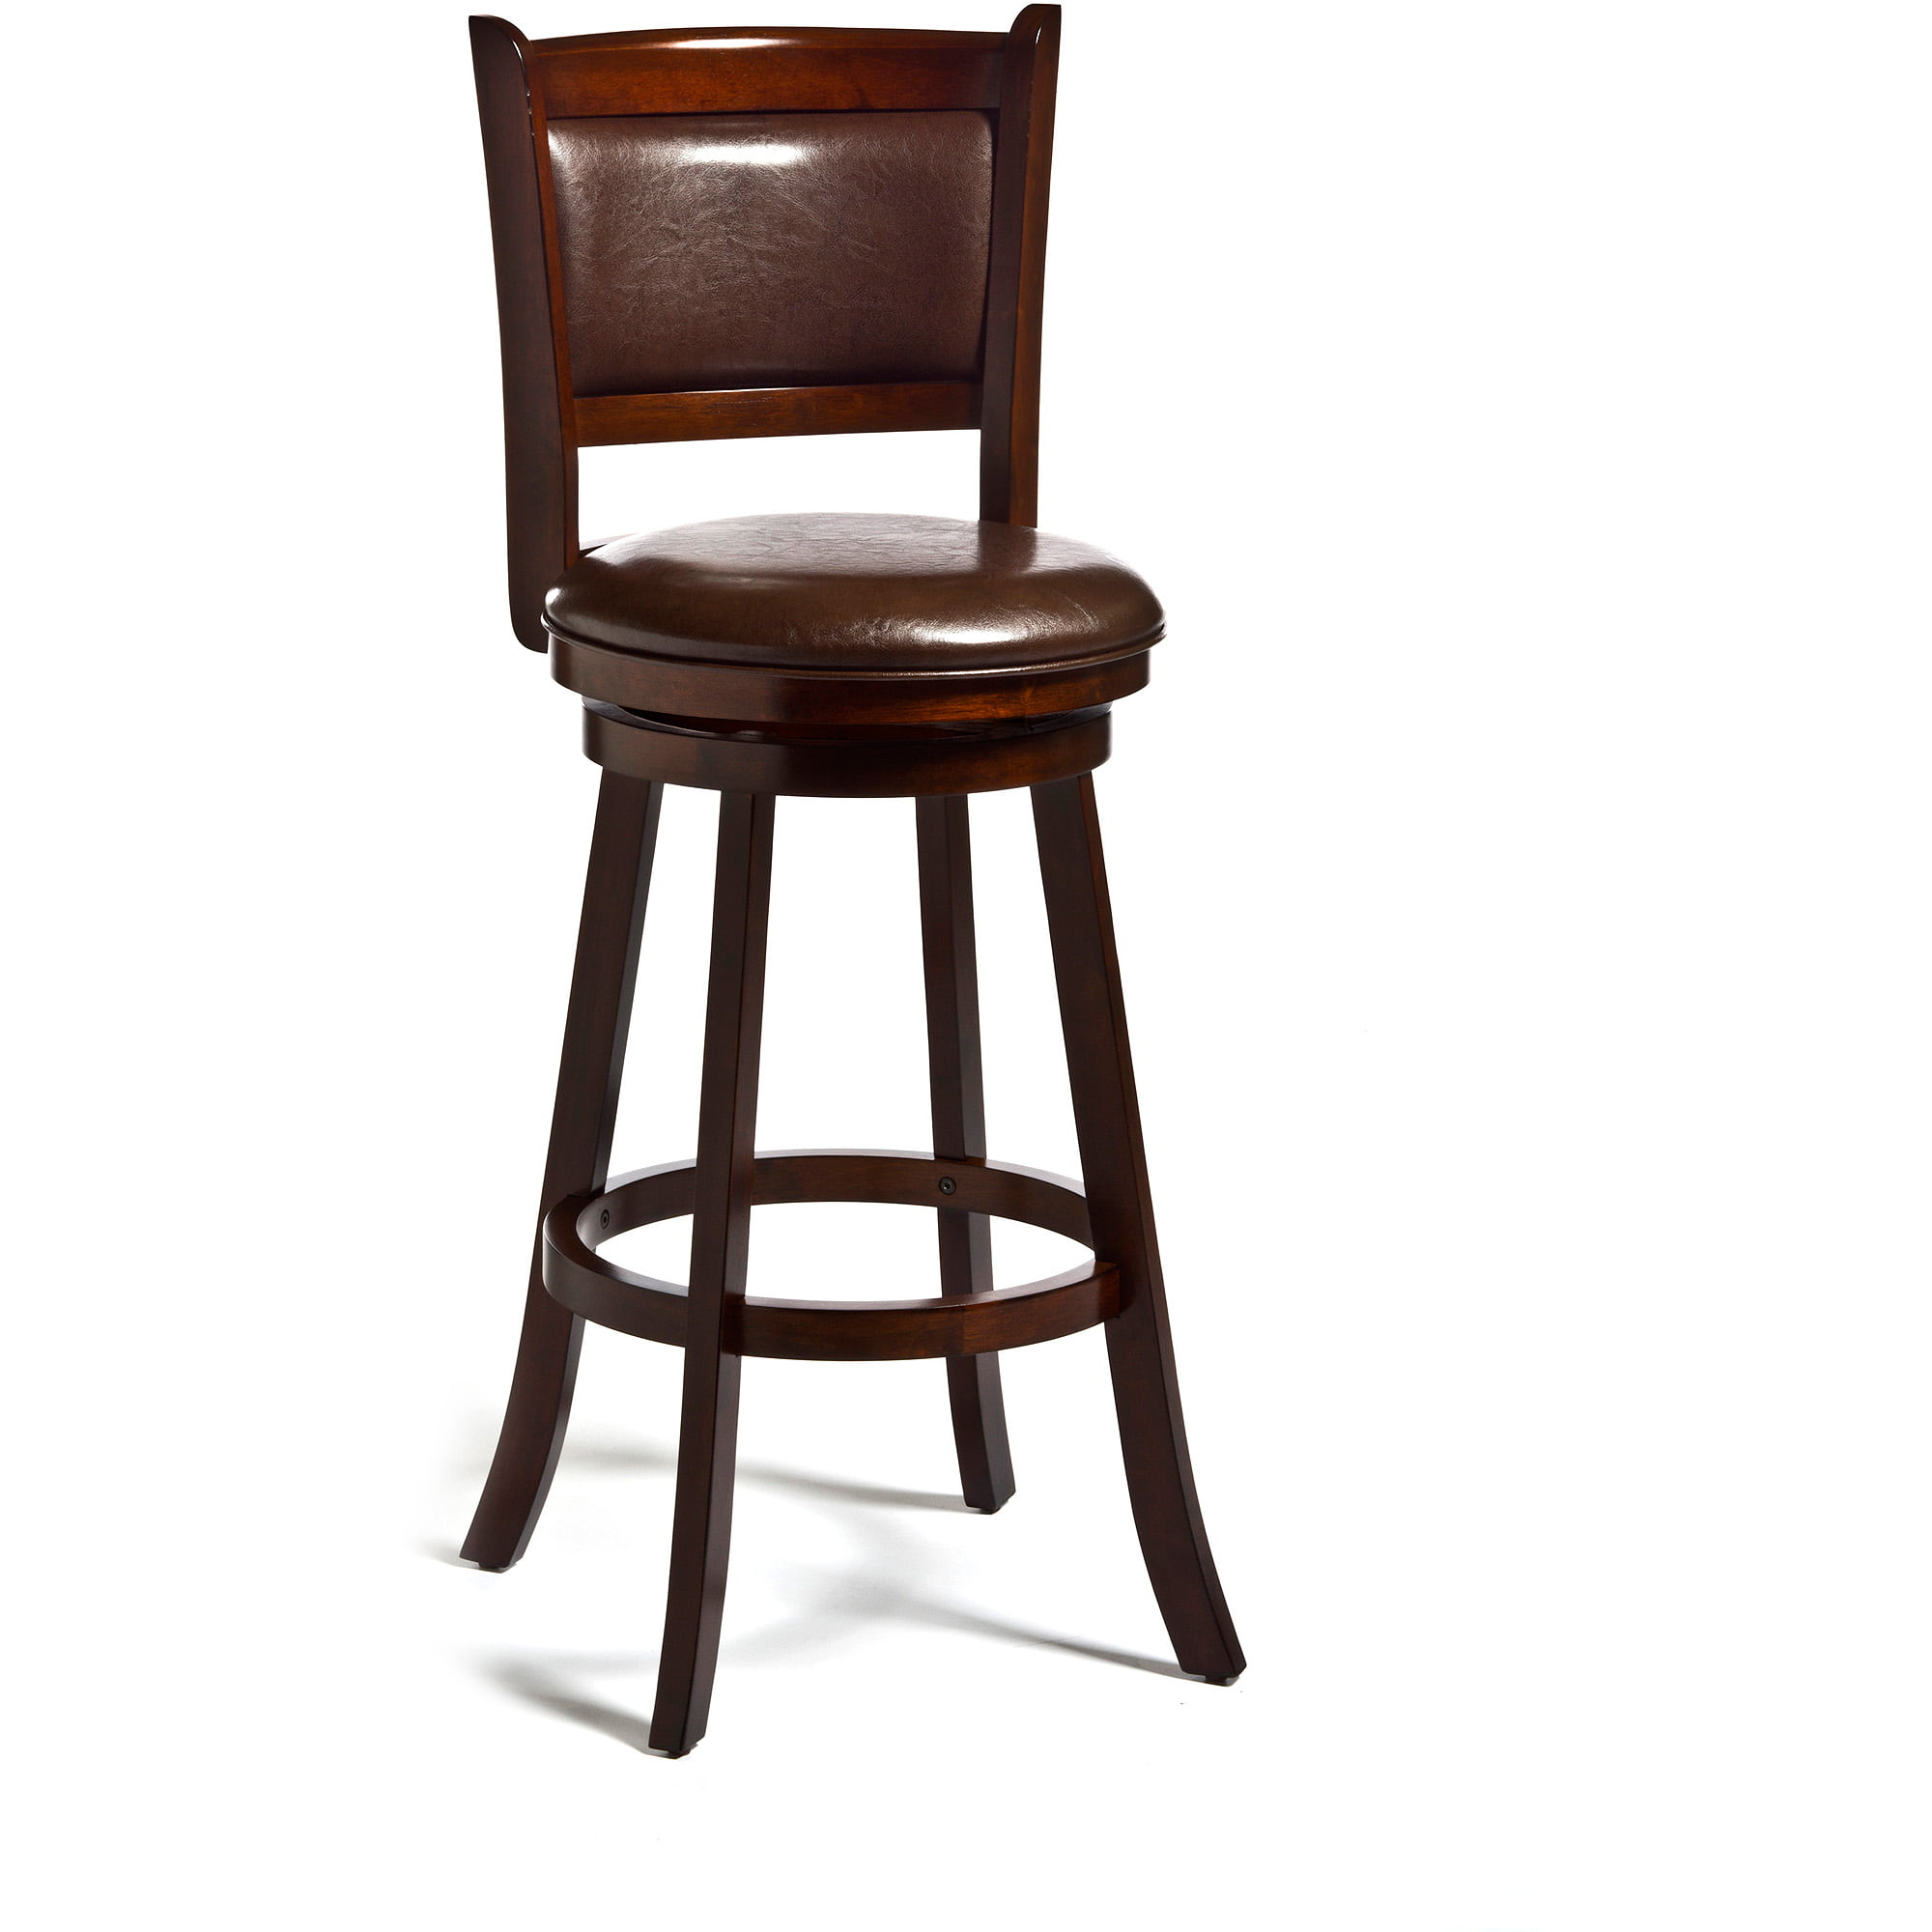 "Hillsdale Dennery 29"" Swivel Bar Stool in Cherry by Hillsdale Furniture LLC"